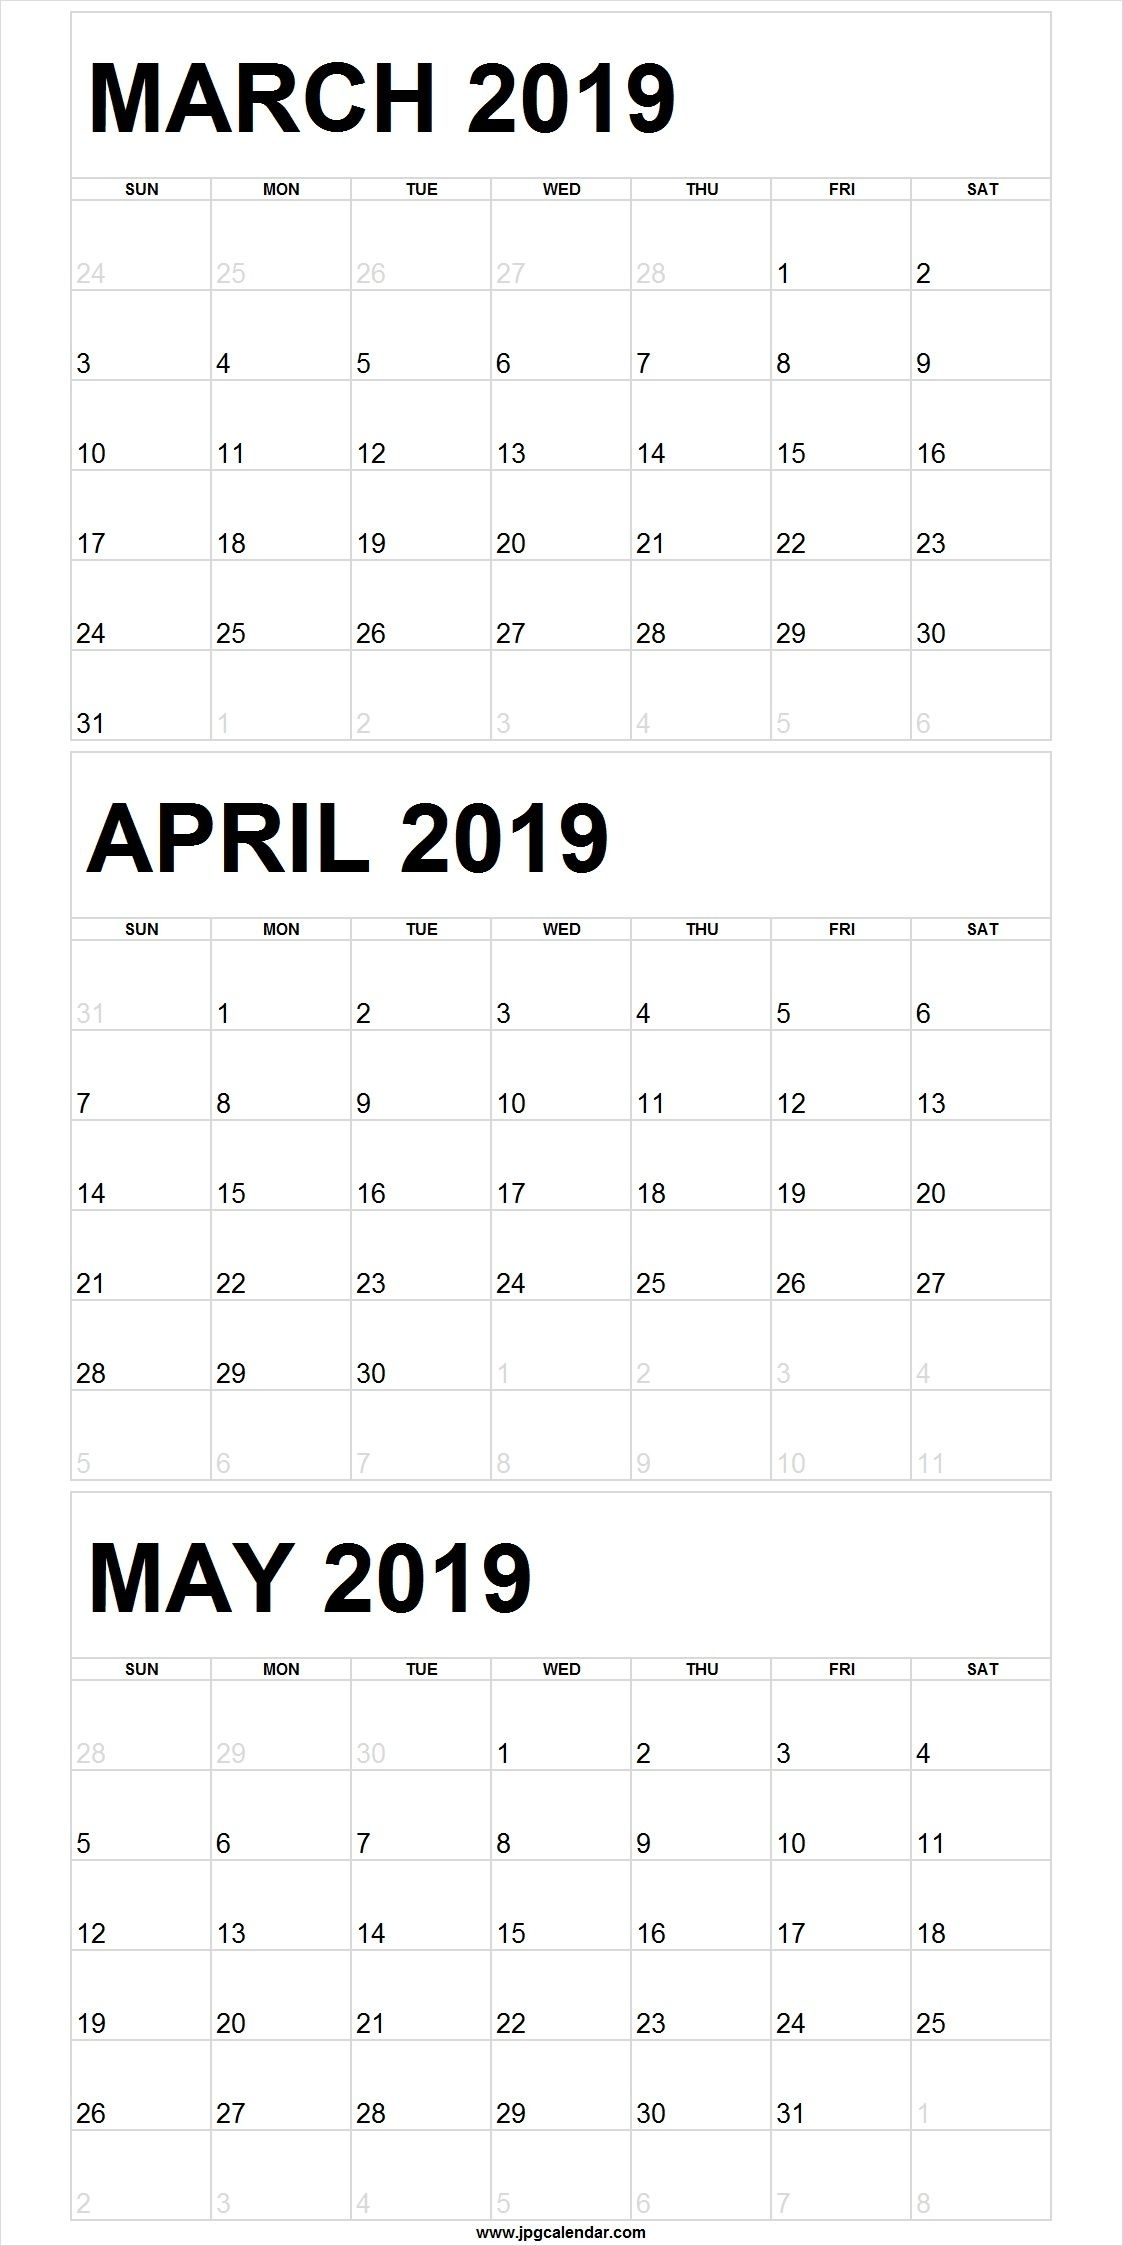 Blank March To May 2019 Calendar Printable #march #april #may in Blank 3 Month Printable Monthly Calendar